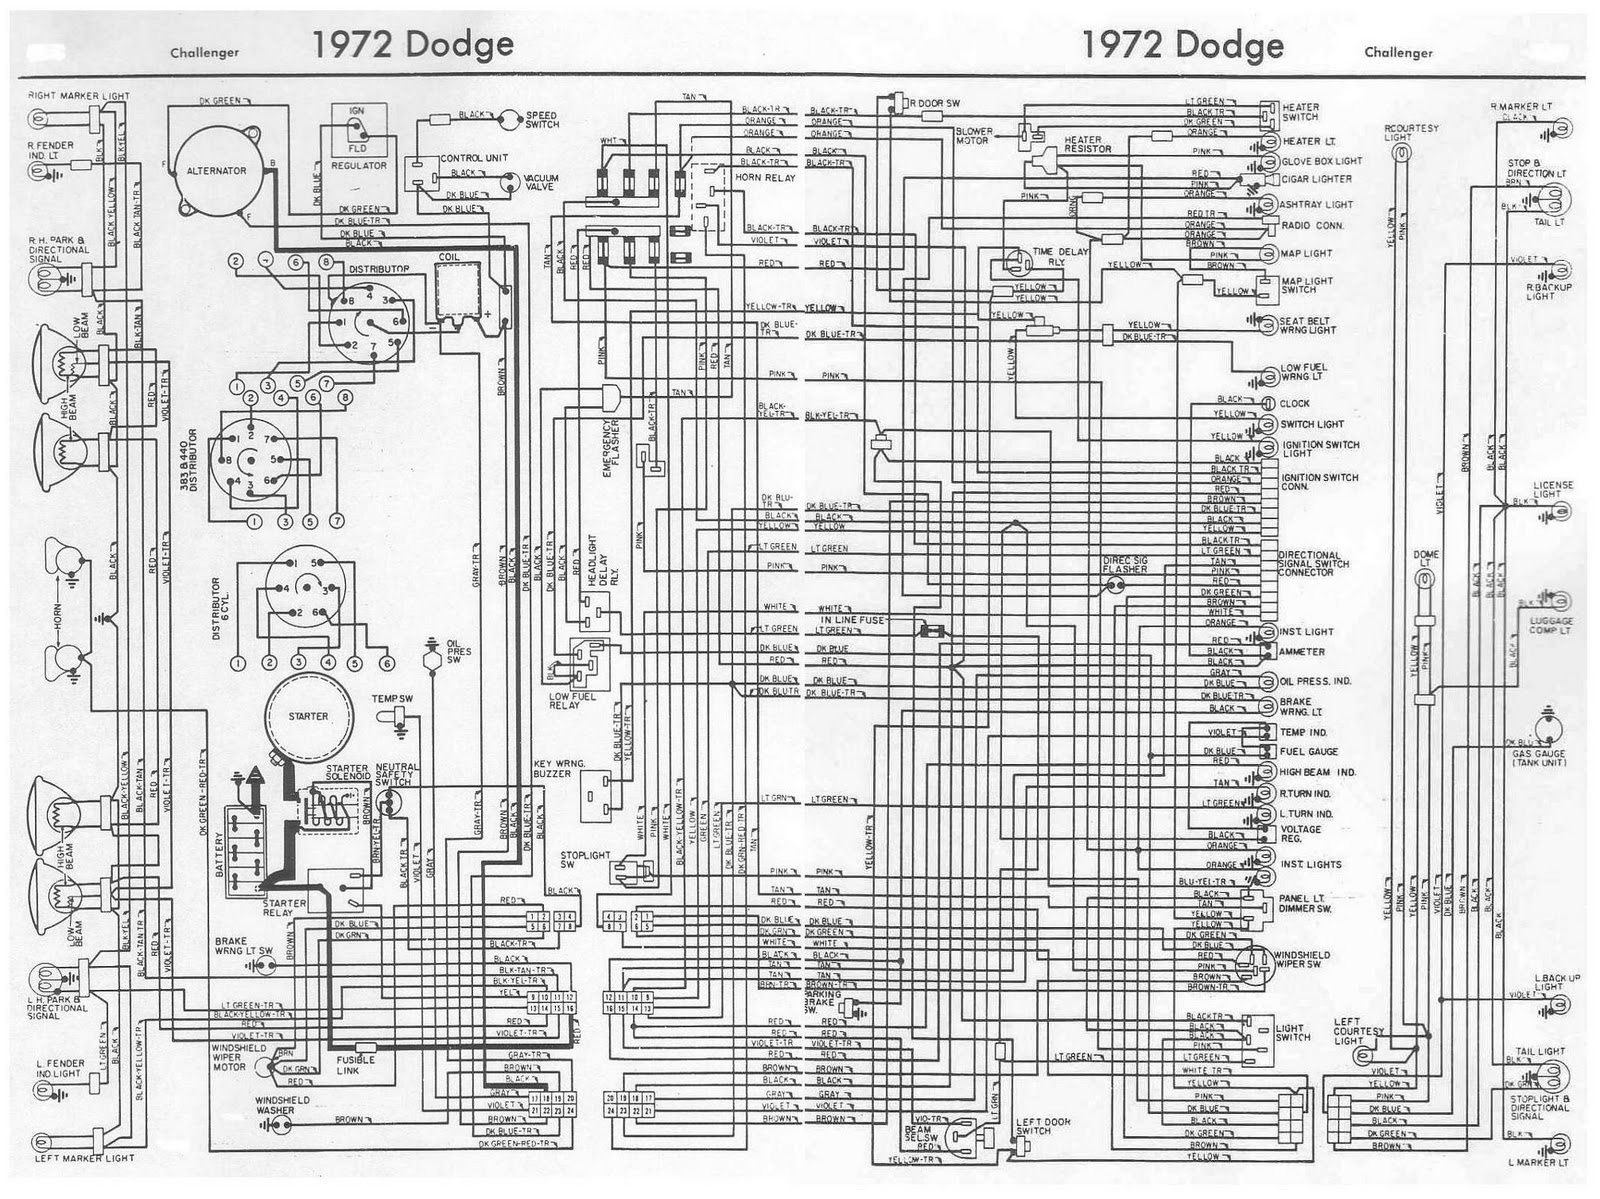 1972 Charger Wiring Diagram - Wiring Diagram Img on 1972 dodge b300 wiring diagram, 1972 ford thunderbird wiring diagrams, dodge charger wiring diagrams, 1972 dodge challenger wiring diagram, 1977 dodge electrical diagrams, 1972 dodge truck wiring diagram, dodge truck electrical diagrams, 1972 dodge dart wiring diagrams,